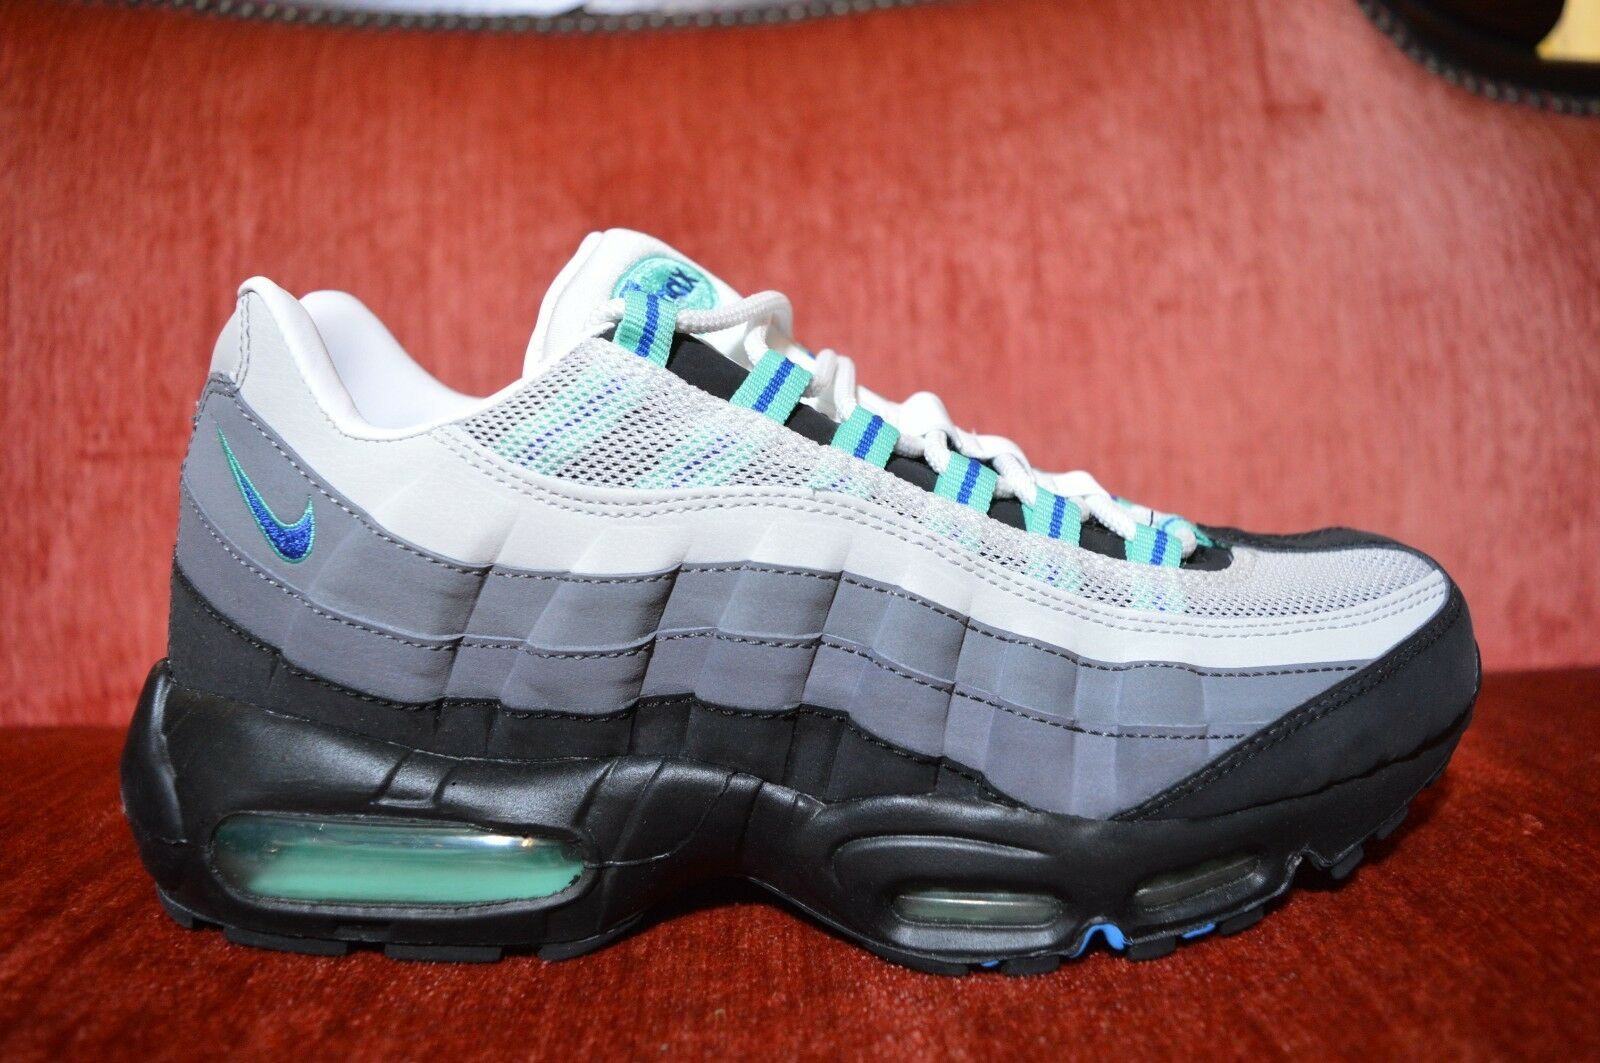 RARE Nike Air Max 95 SI JD Sports Exclusive 329393-006 Size 8 DS bluee White